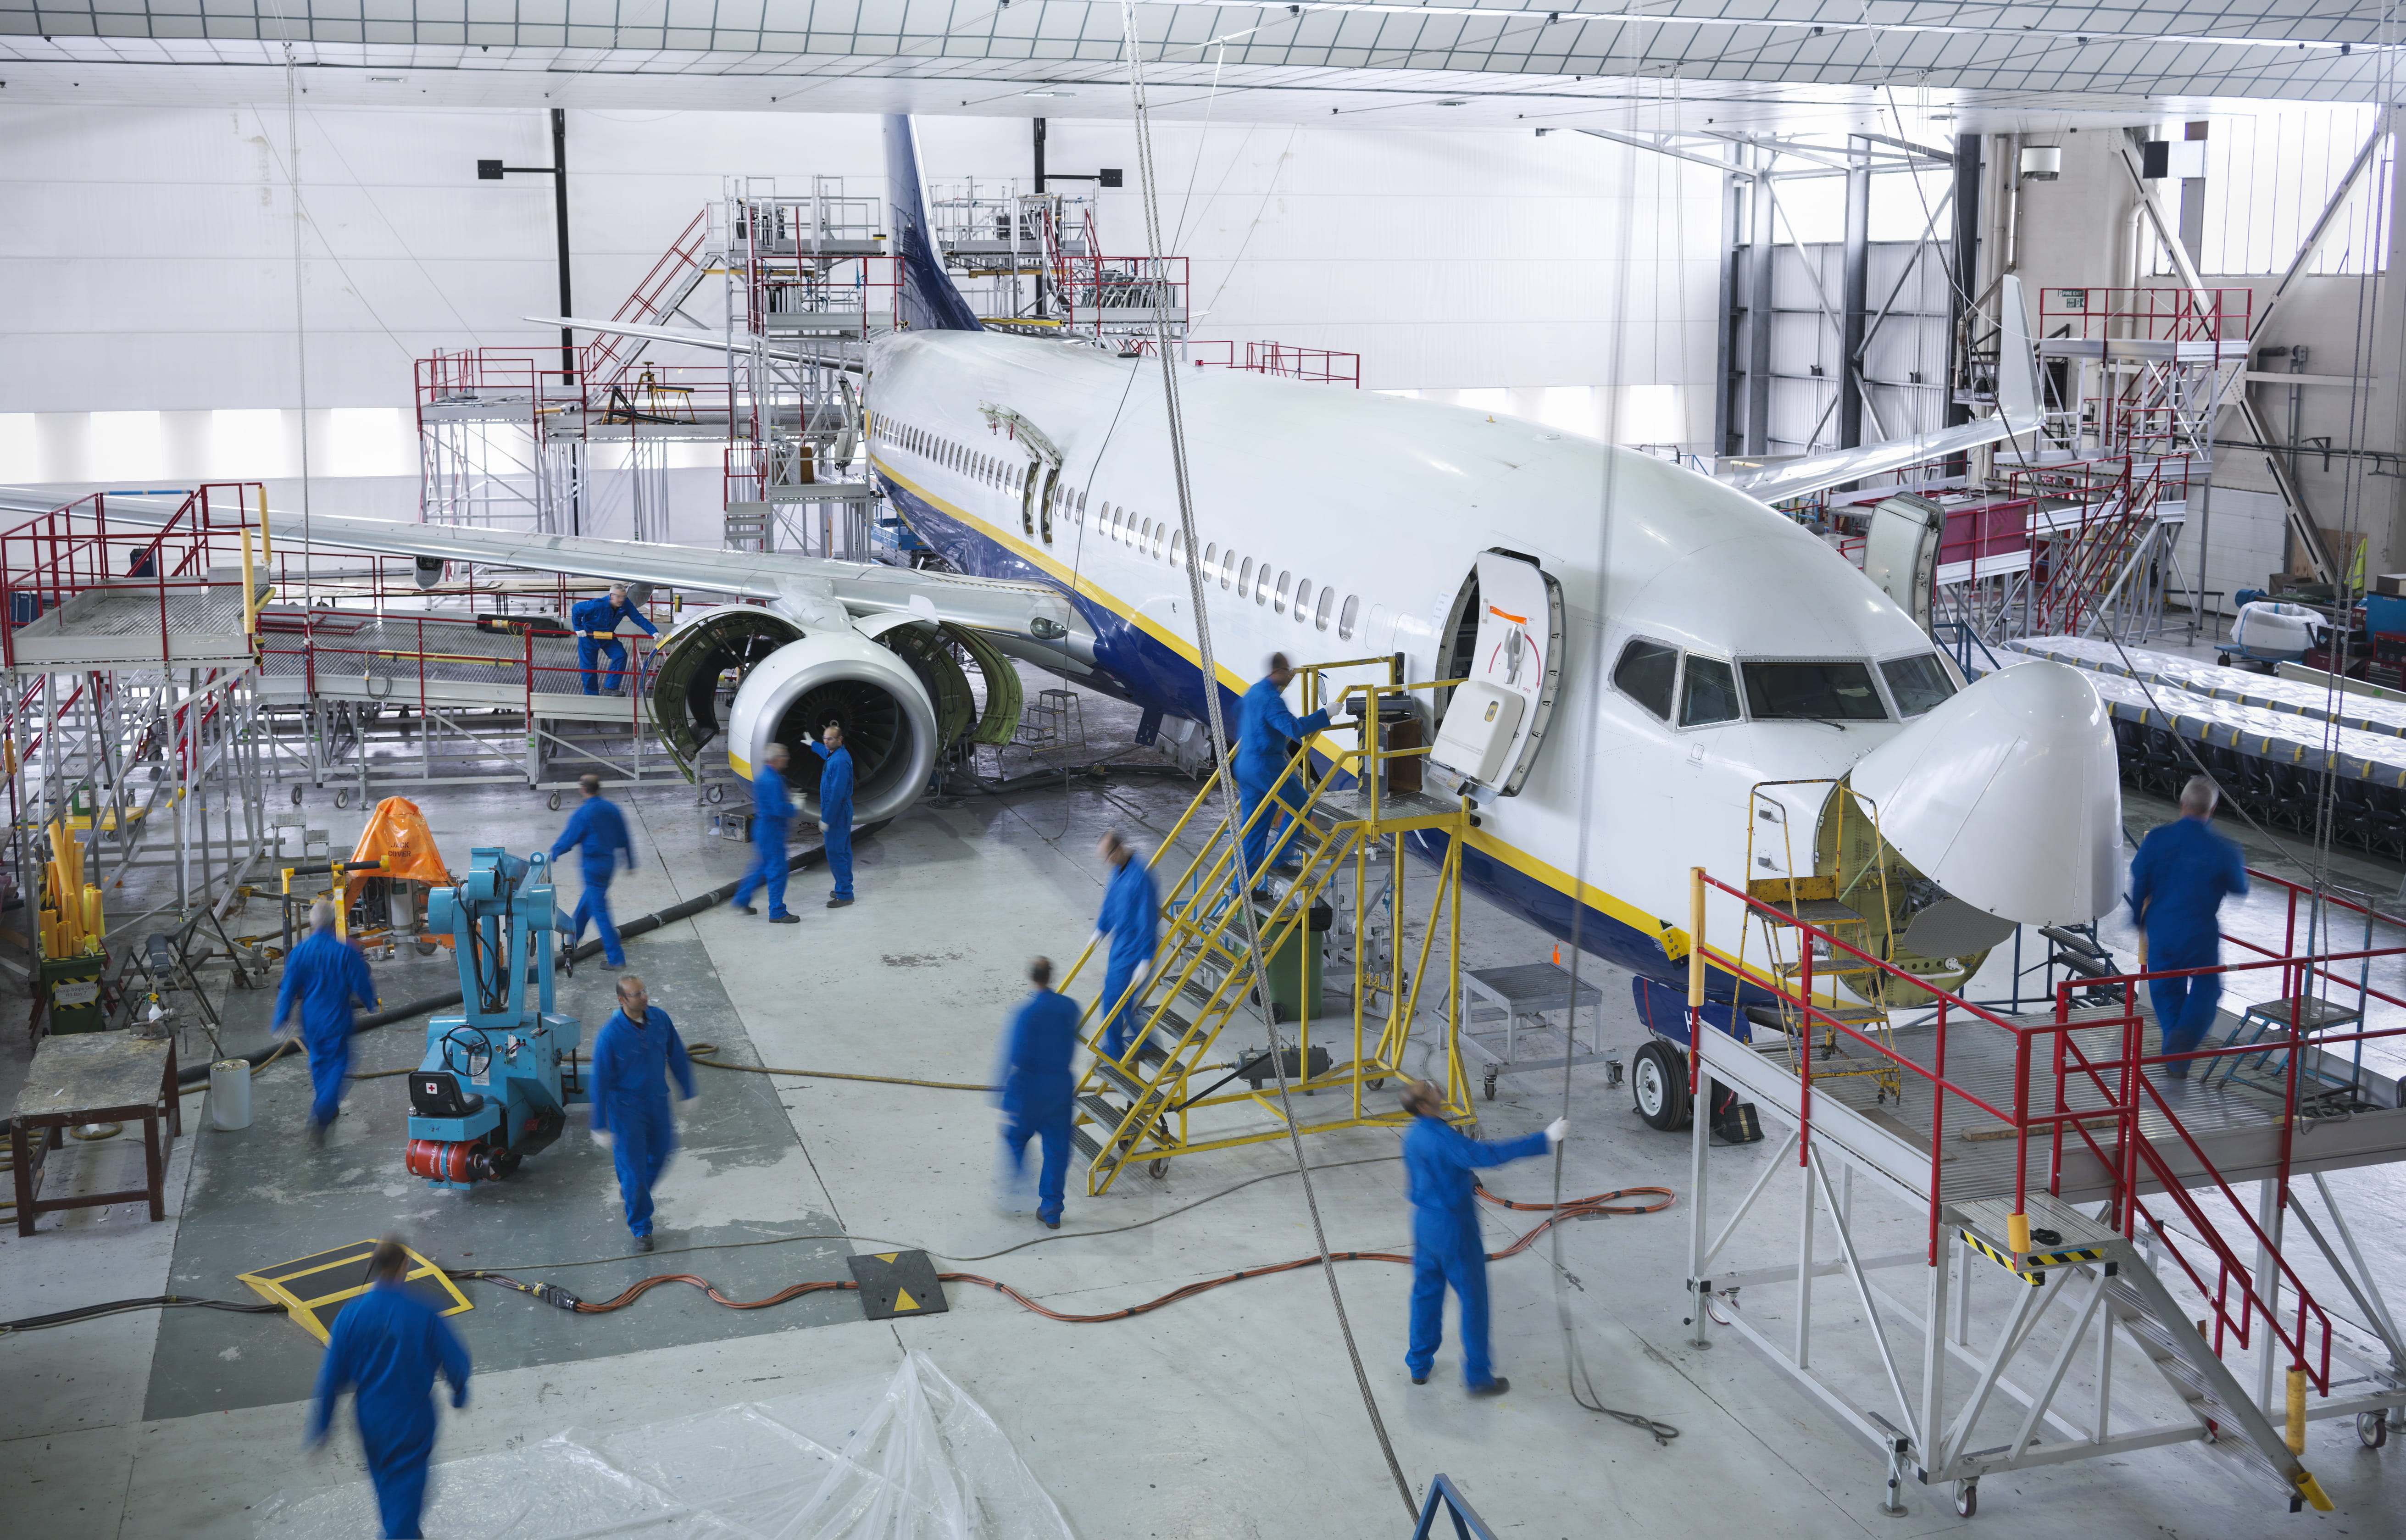 Image of engineers working on airplane.